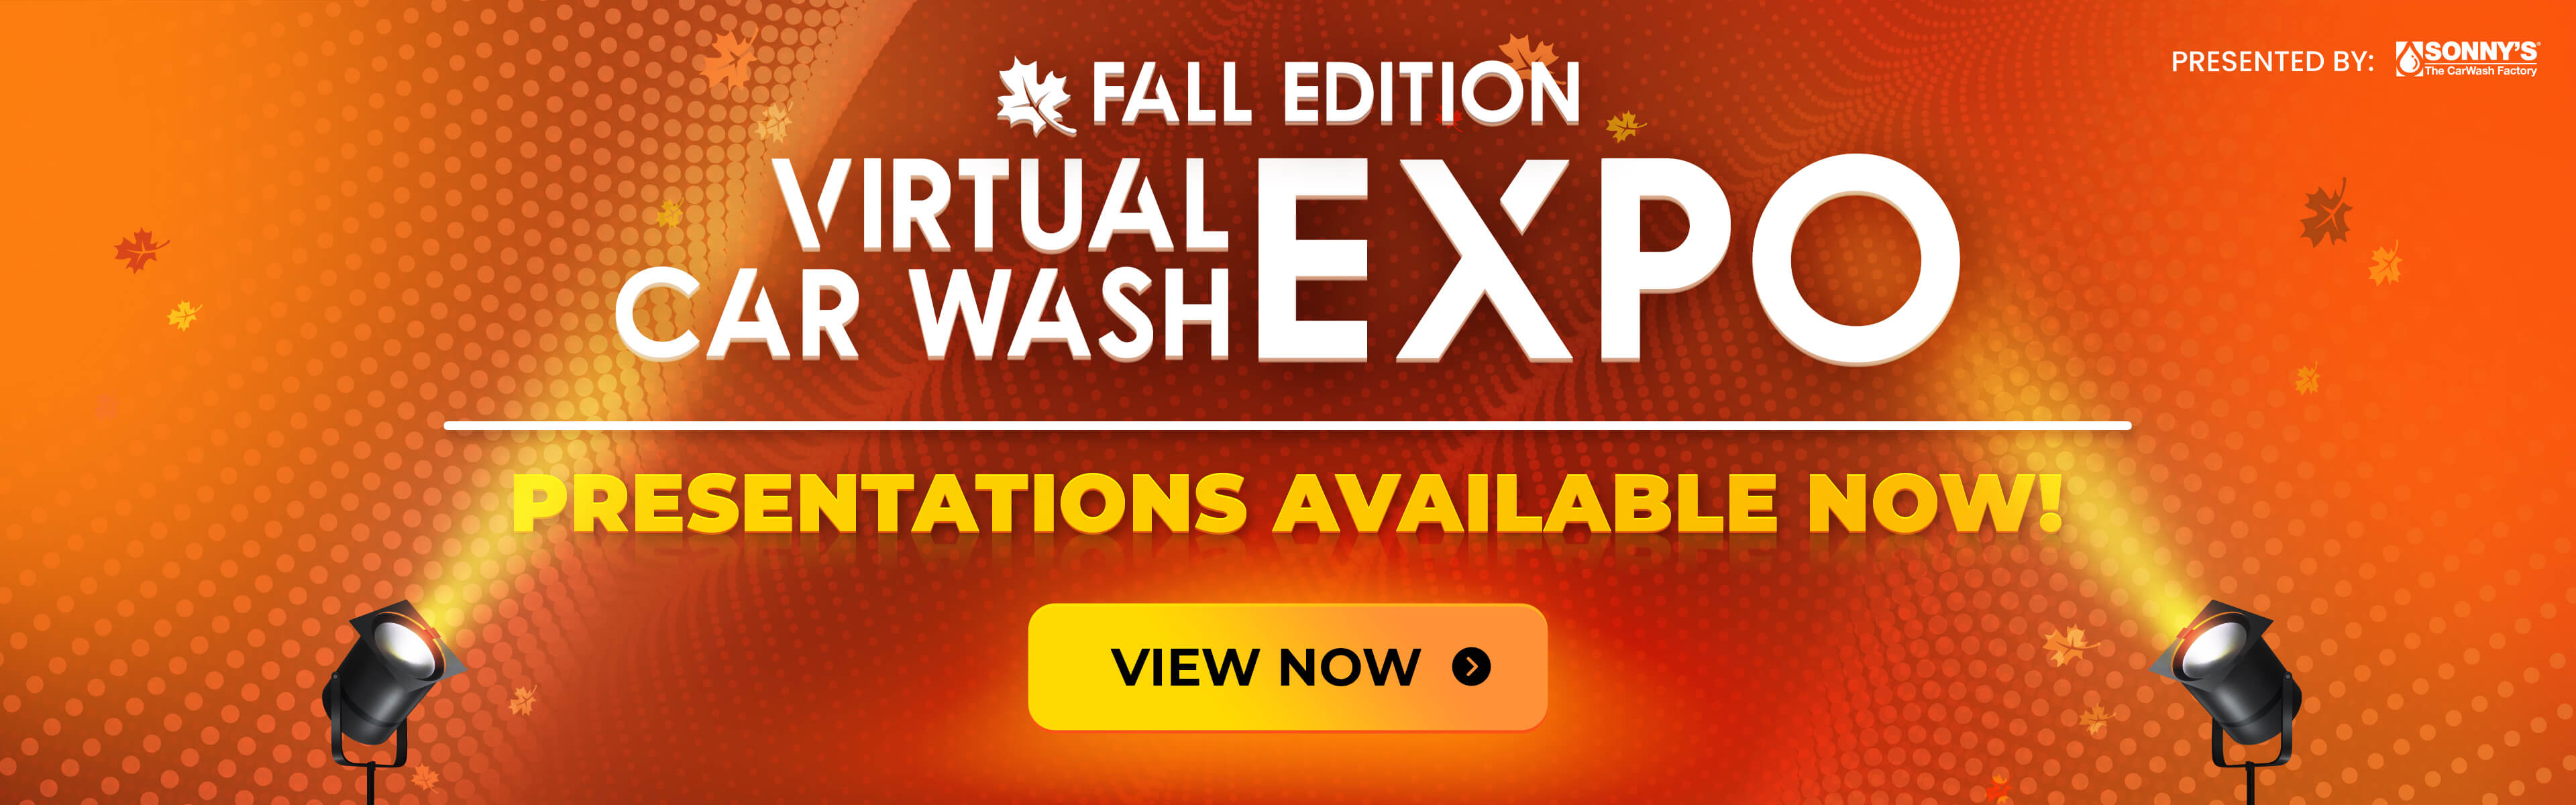 Virtual CarWash Expo Fall Edition: Presentations Gallery Available Now!